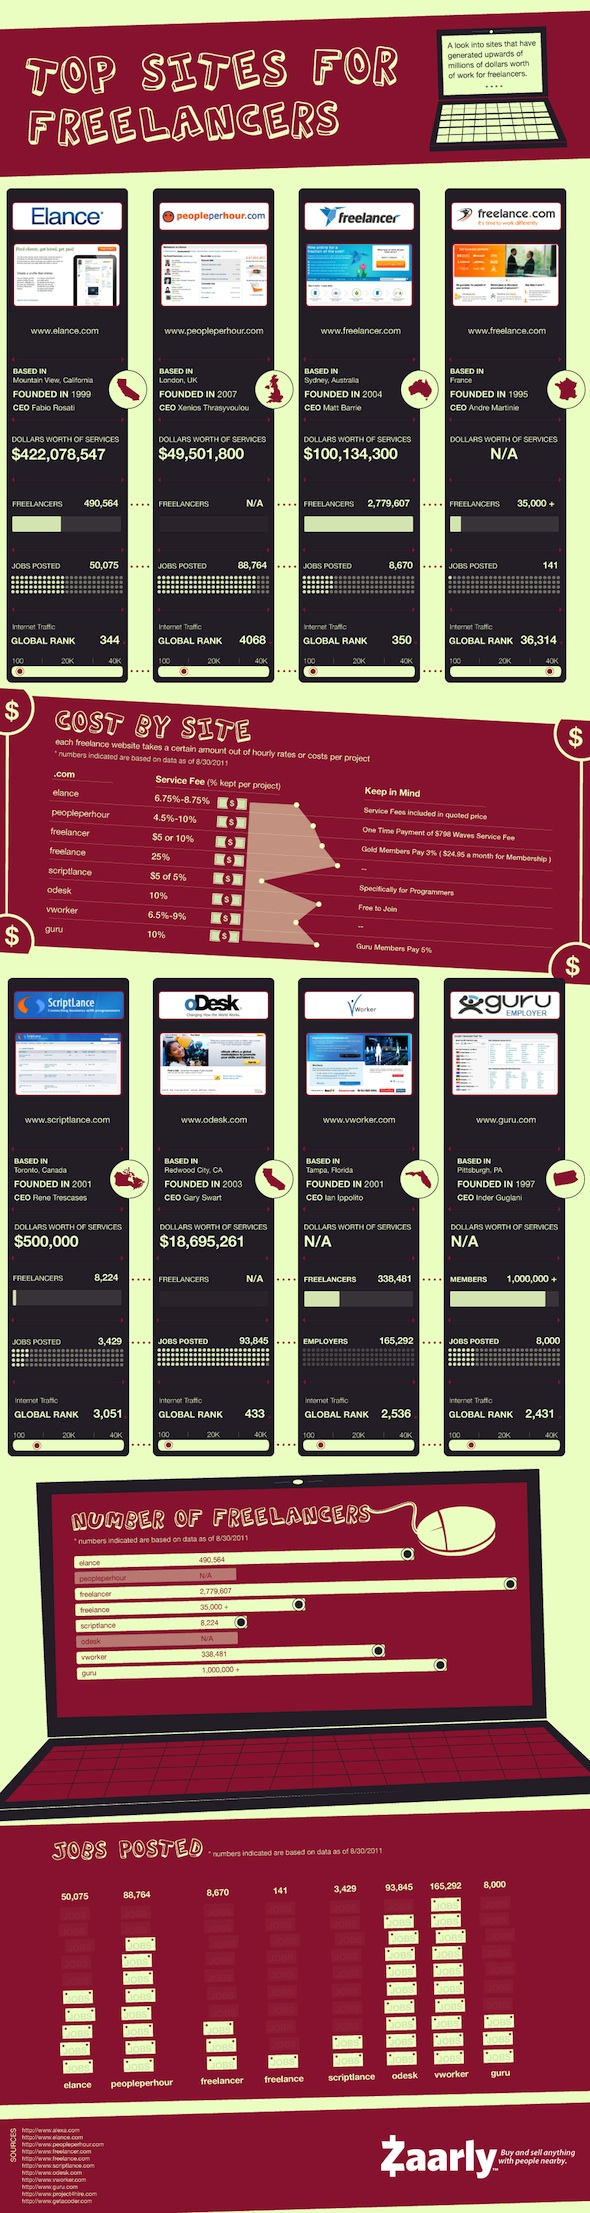 The Top Freelance Sites on the Web